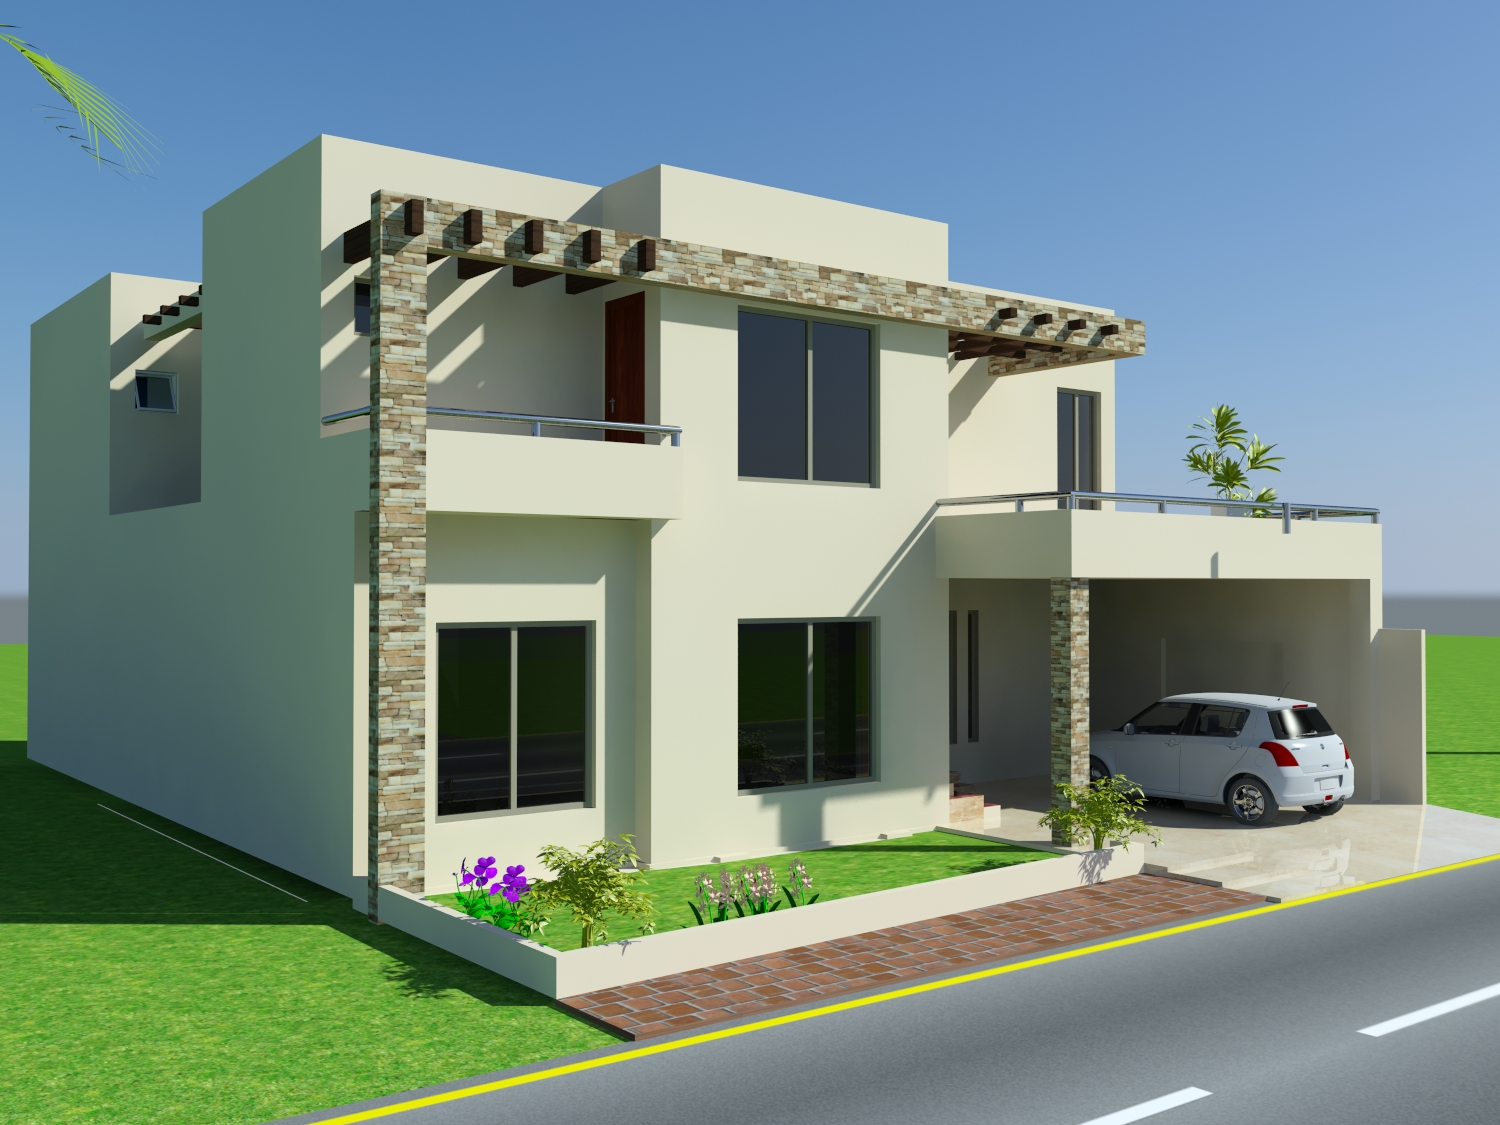 3d front 10 marla house design mian wali for Top 10 house design